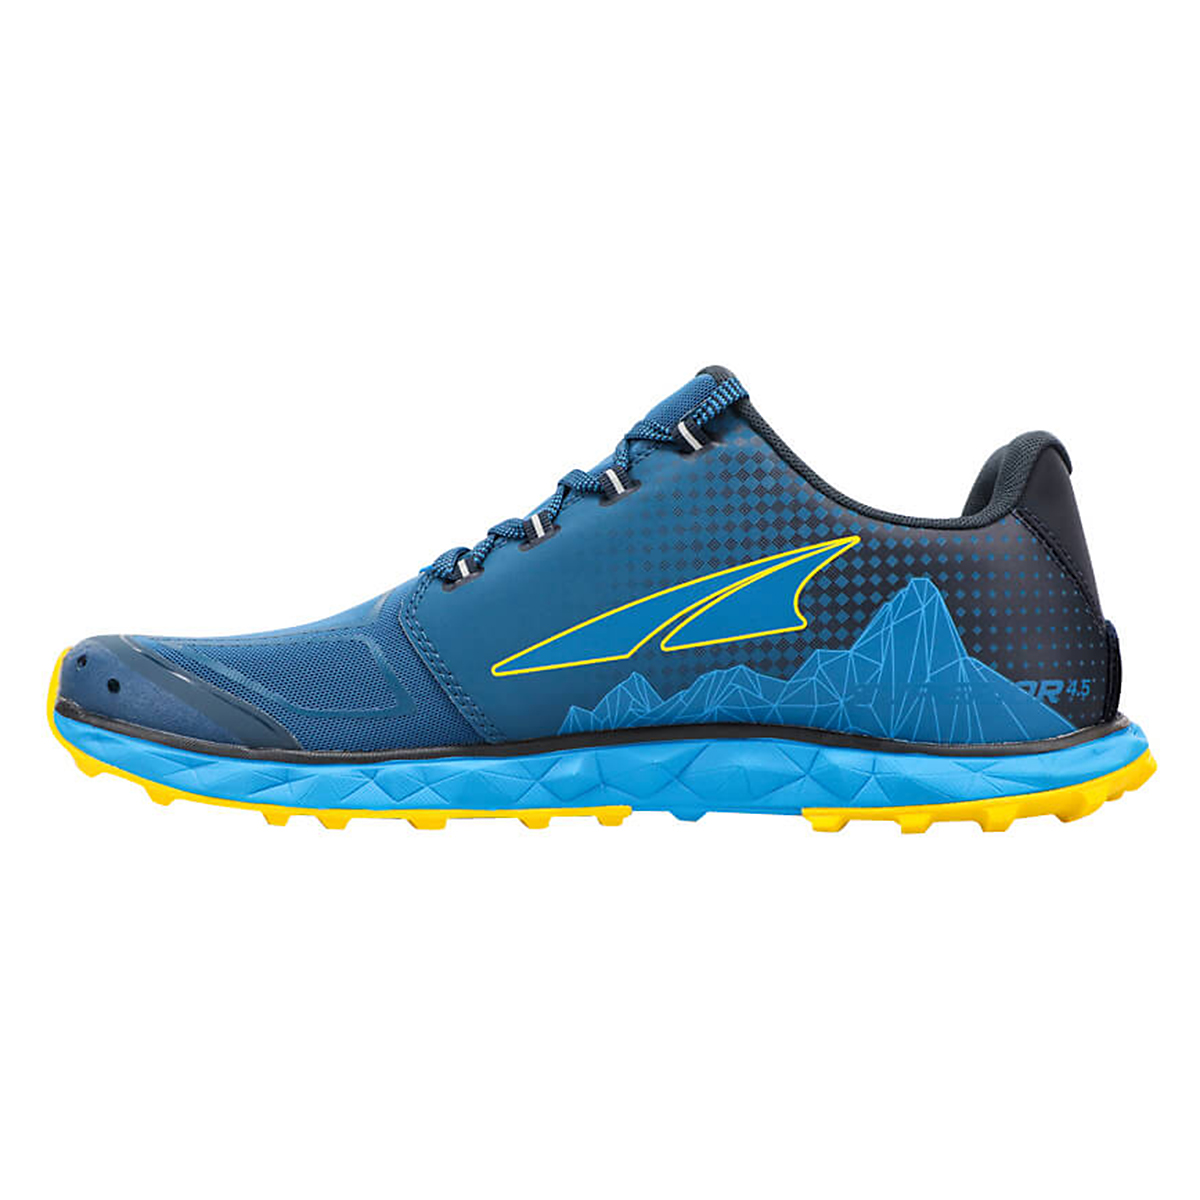 Men's Altra Superior 4.5 Trail Running Shoe - Color: Blue/Yellow - Size: 7 - Width: Regular, Blue/Yellow, large, image 2